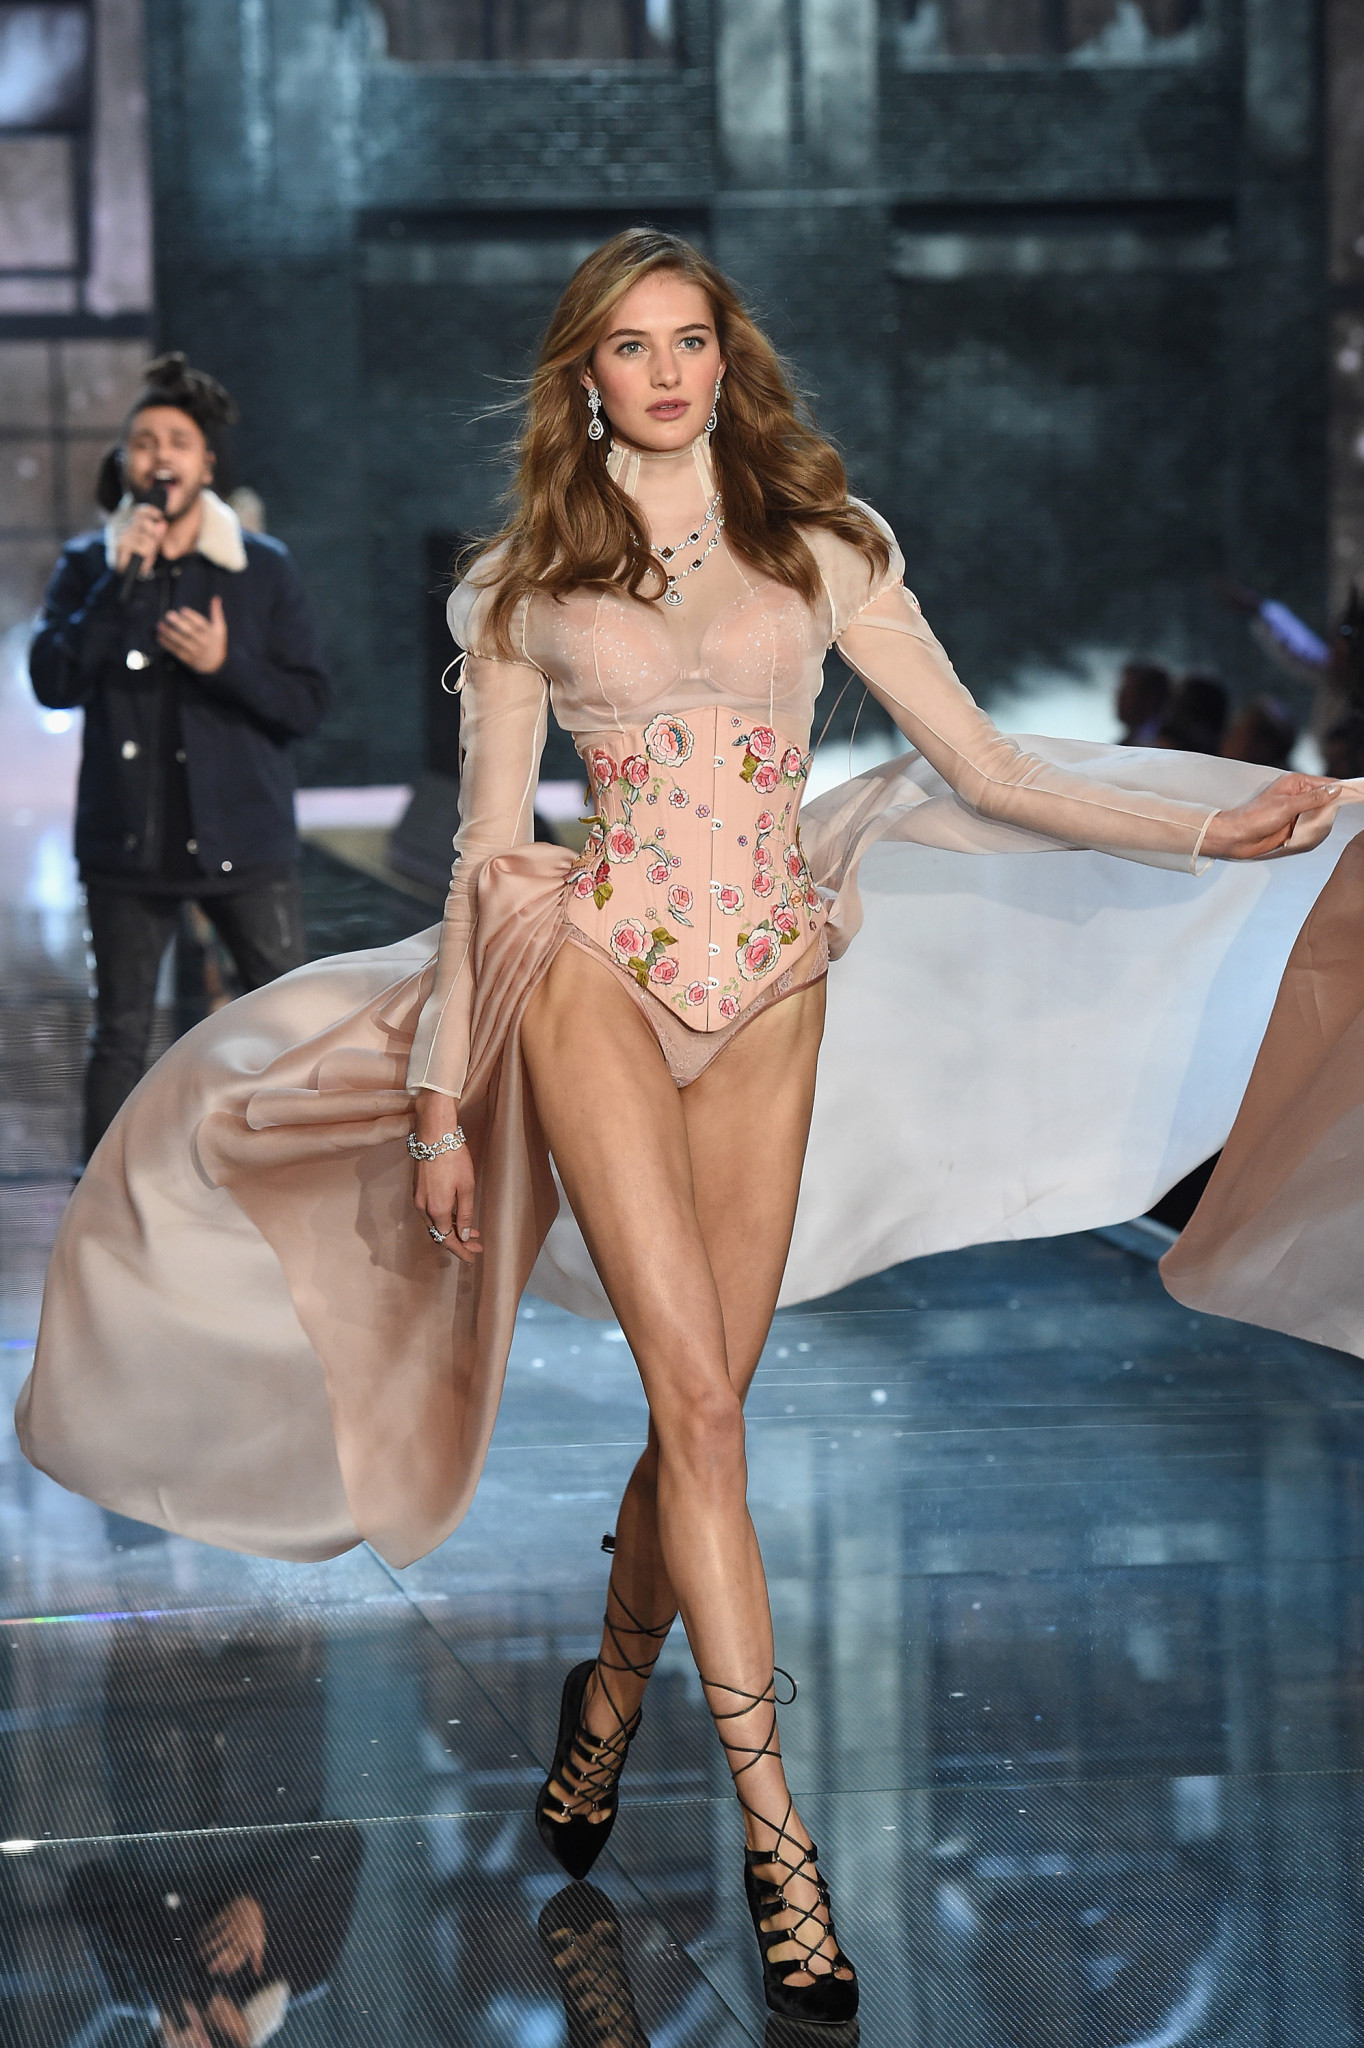 NEW YORK, NY - NOVEMBER 10: Model Sanne Vloet from the Netherlands walks the runway during the 2015 Victoria's Secret Fashion Show at Lexington Avenue Armory on November 10, 2015 in New York City.